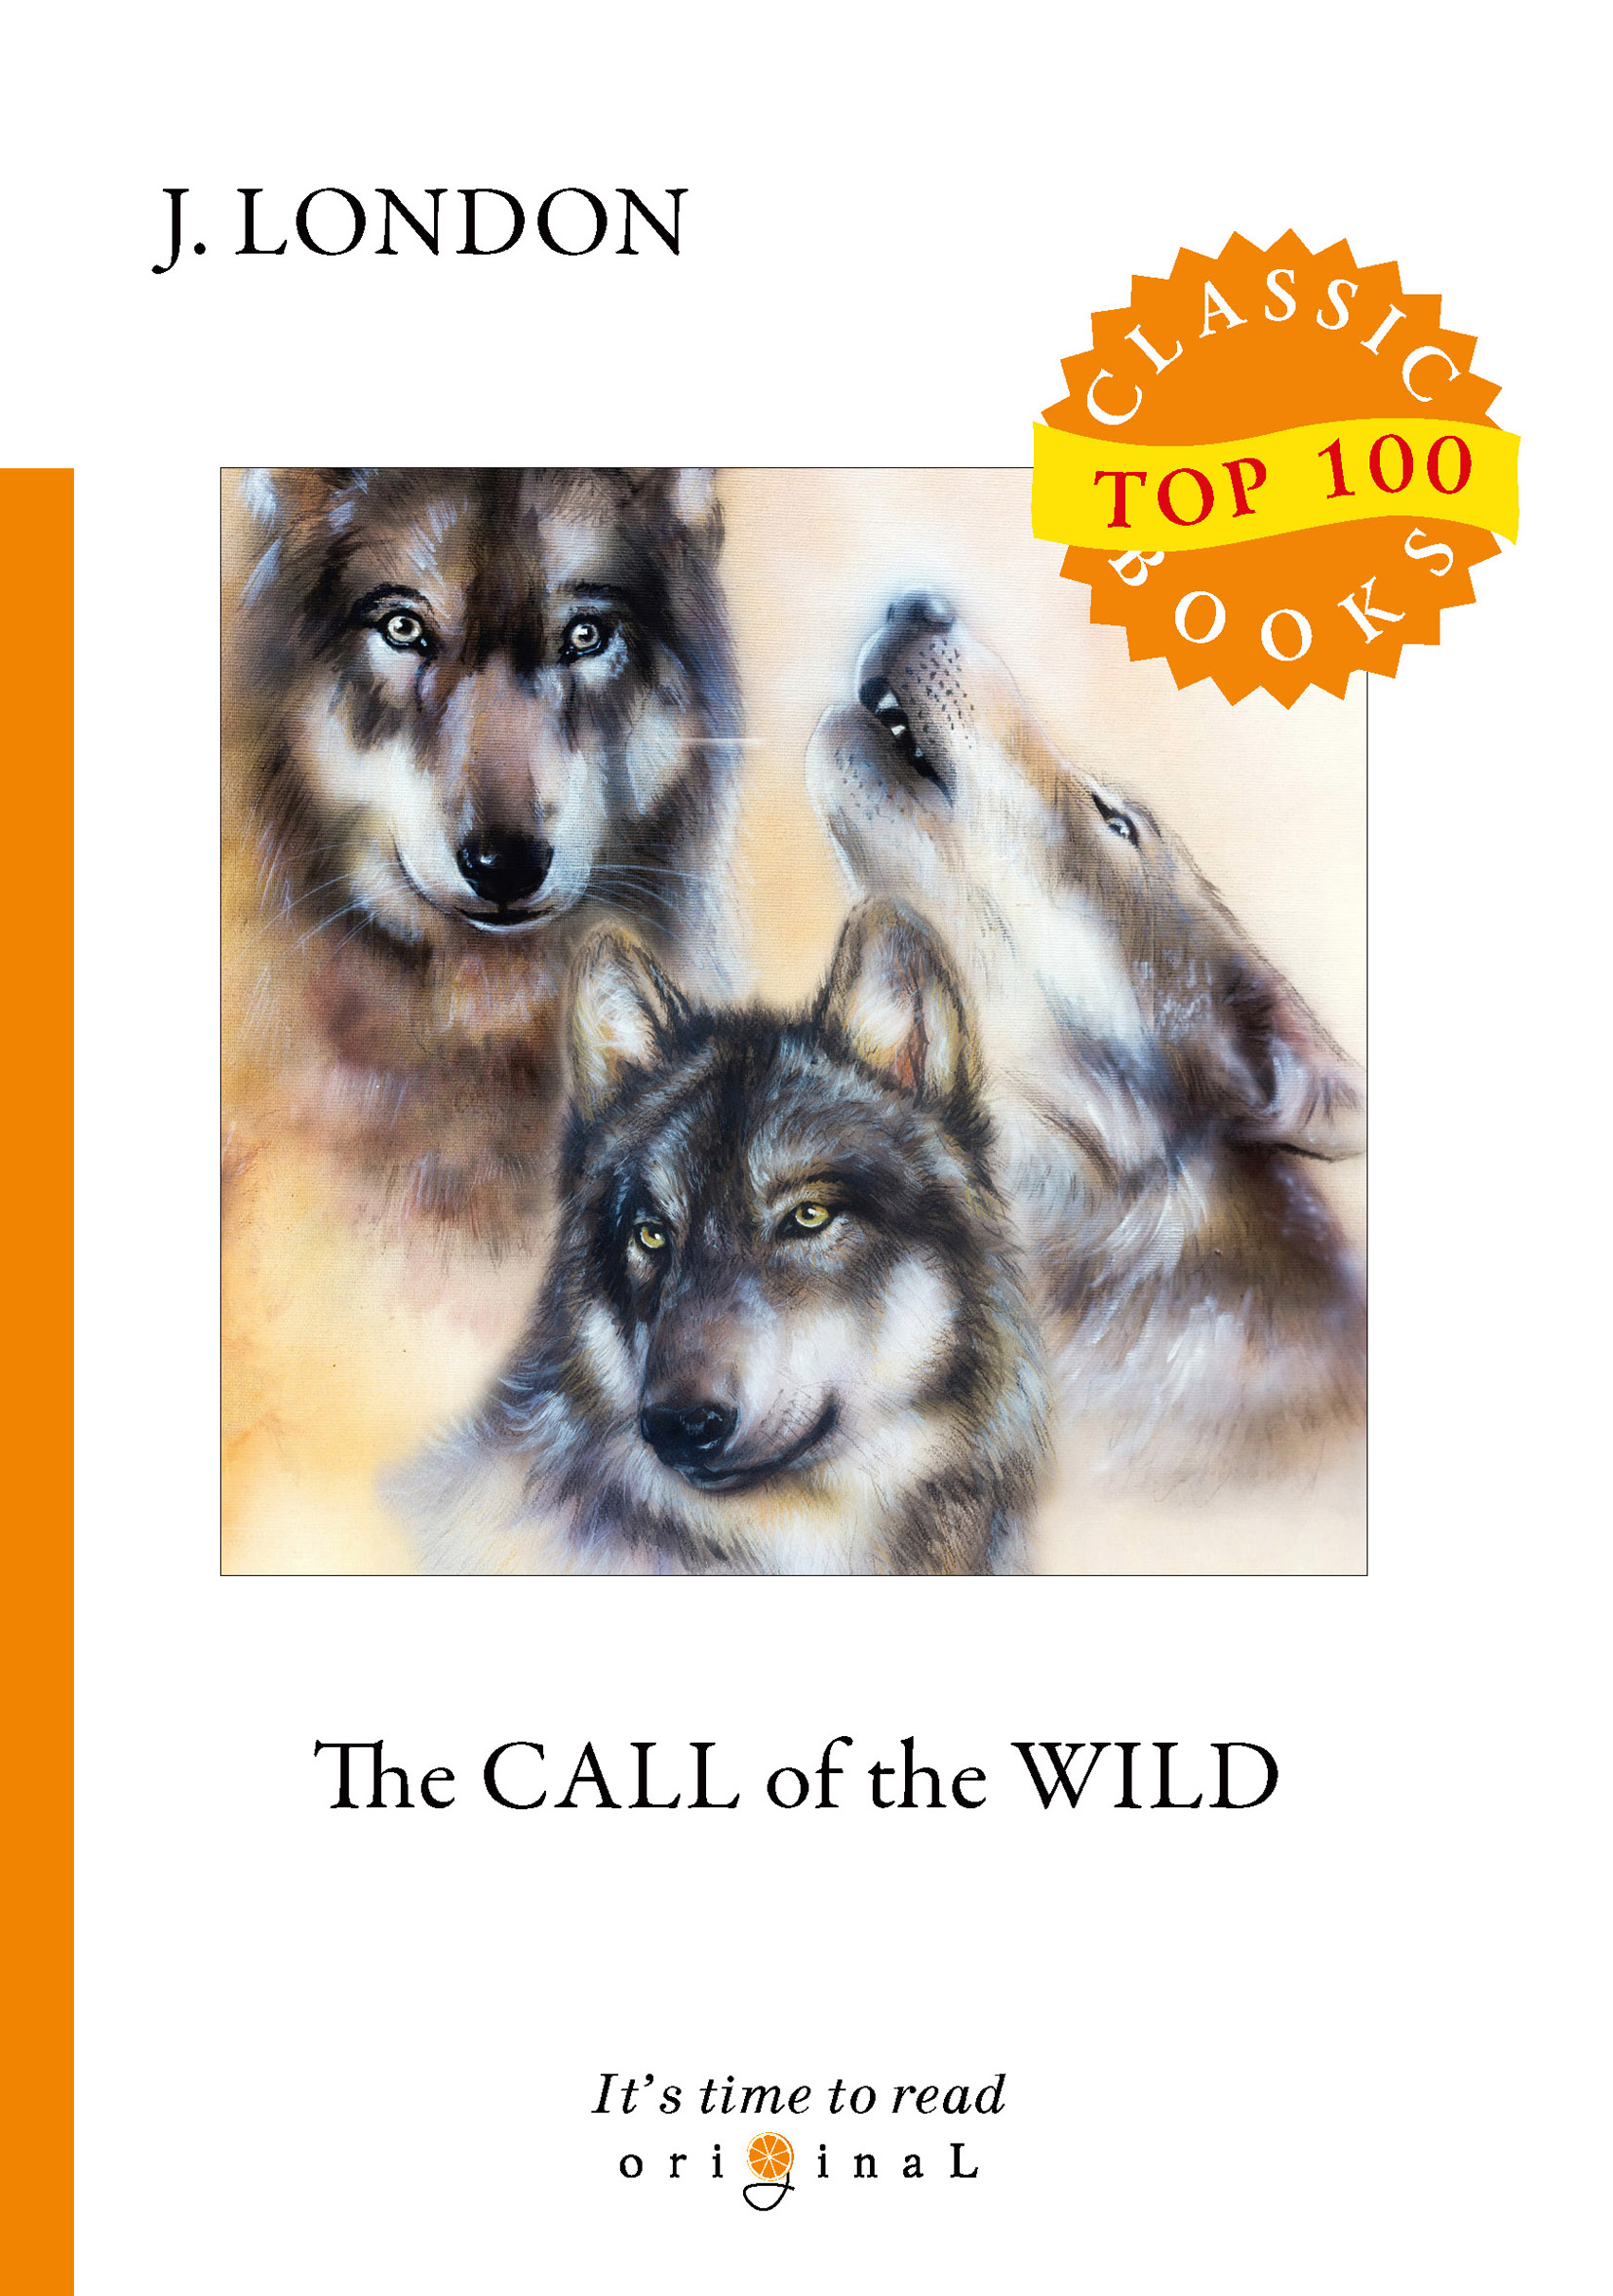 J. London The Call of the Wild london j london call of the wild